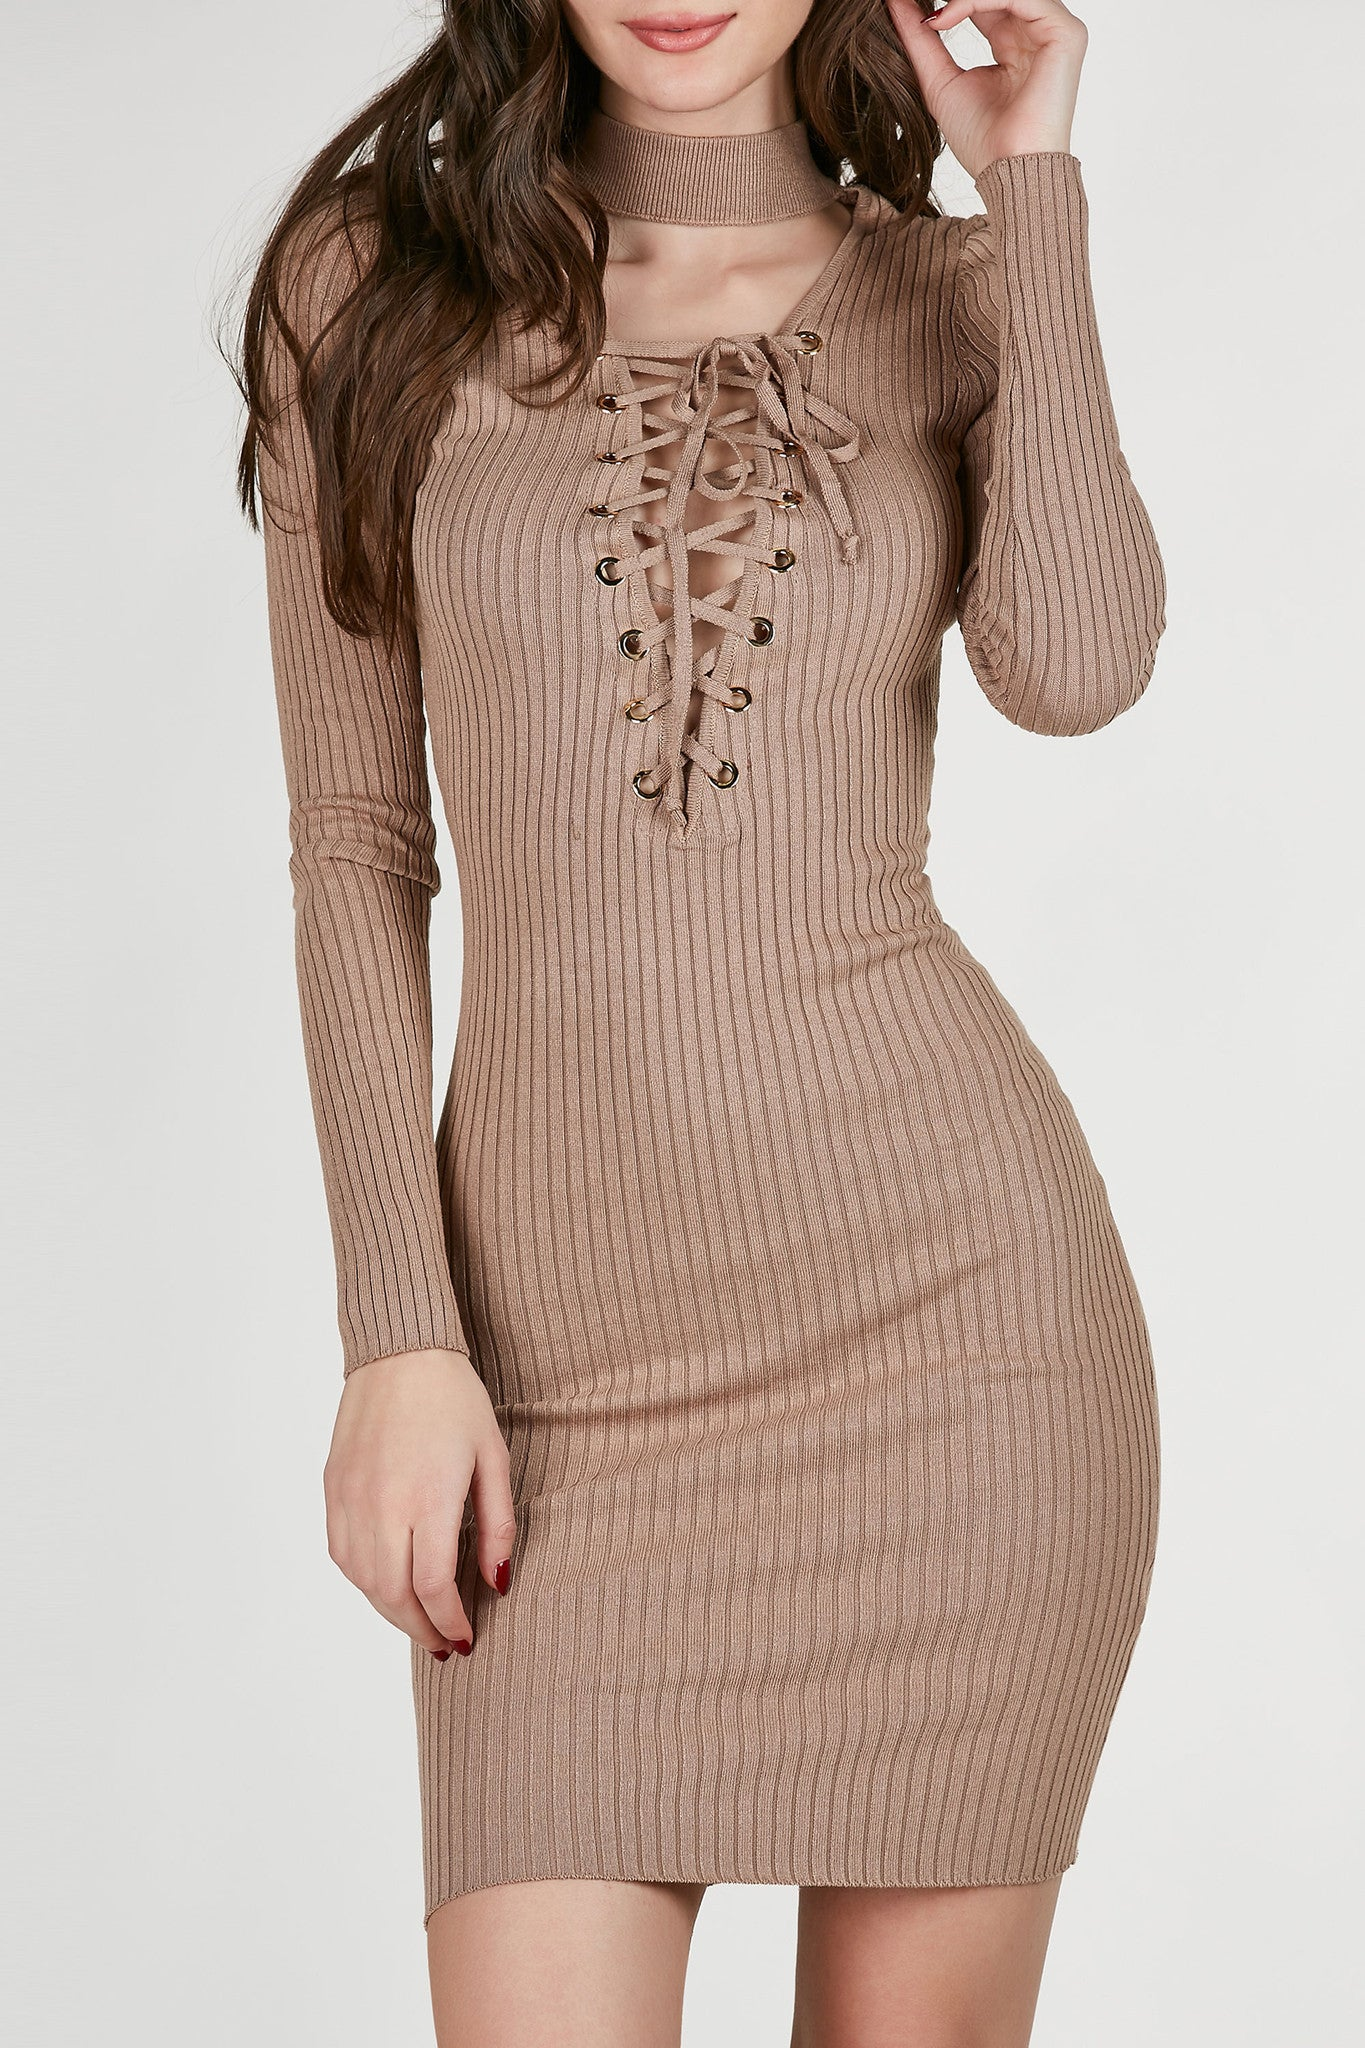 Choker neck ribbed midi dress with plunging cut out with lace up design. Gold hardware eyelet detailing with stretchy, slim fit.